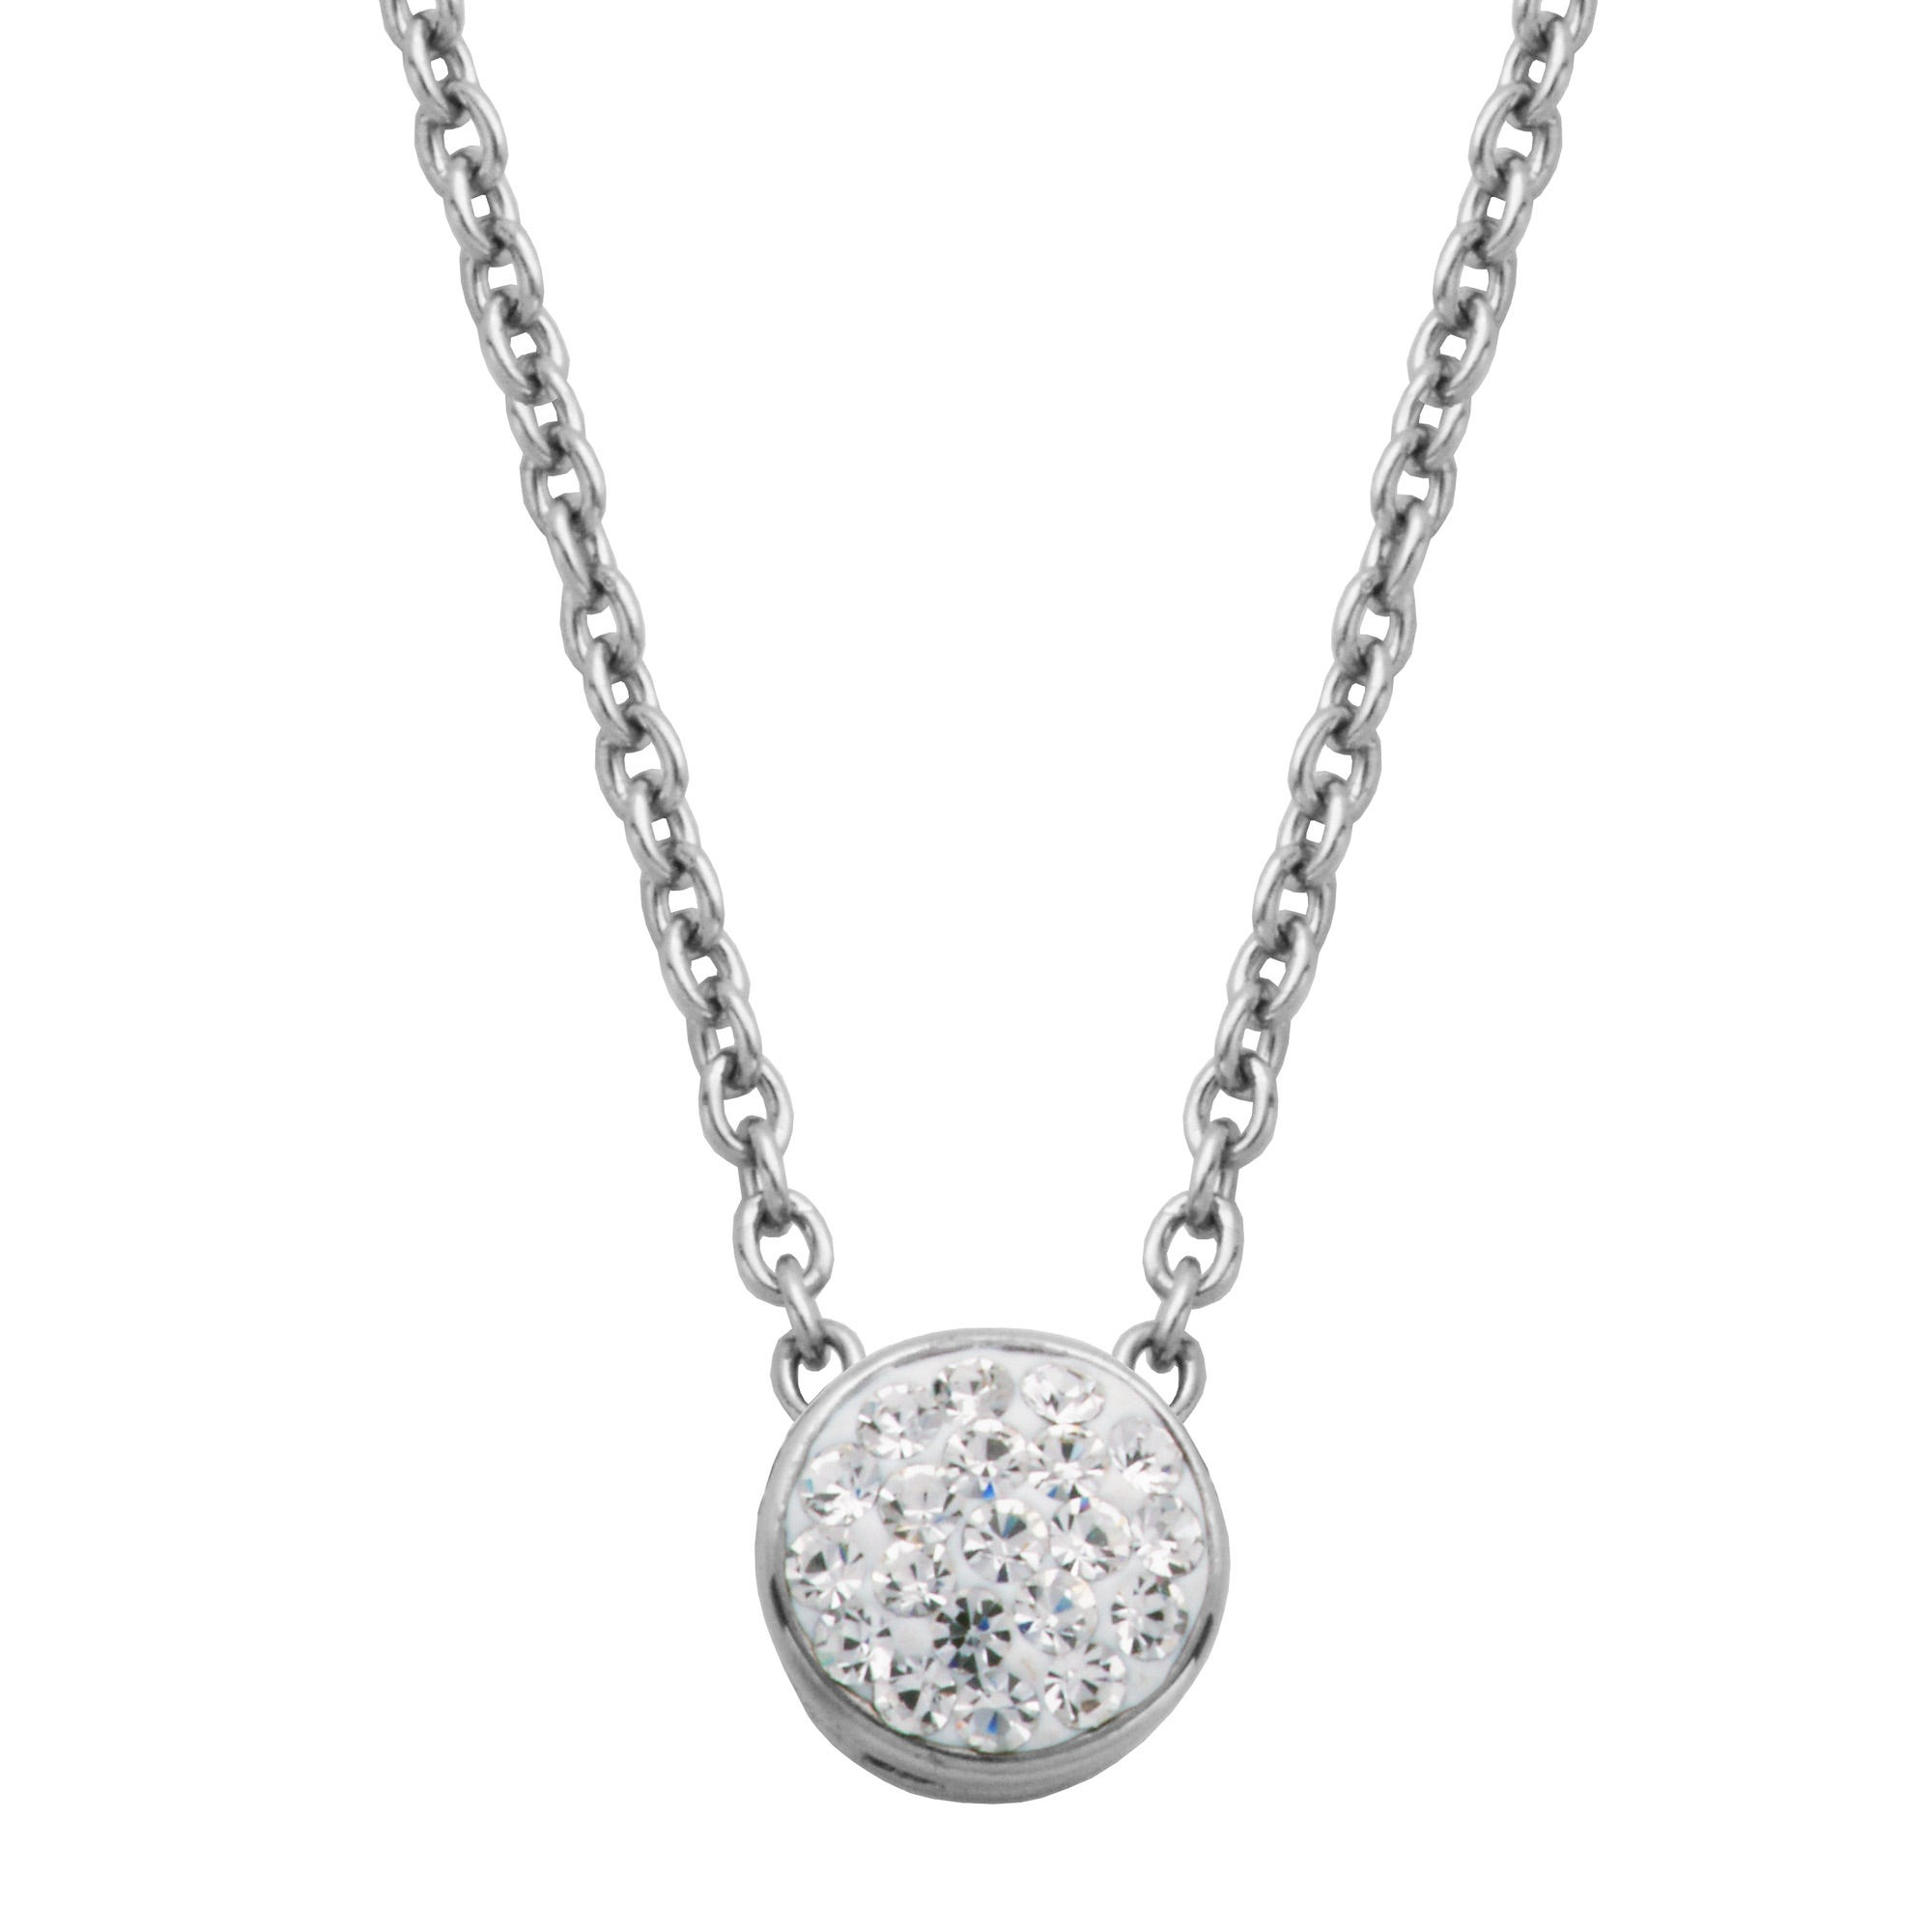 Bezel Set Crystal Fashion Necklace in Stainless Steel